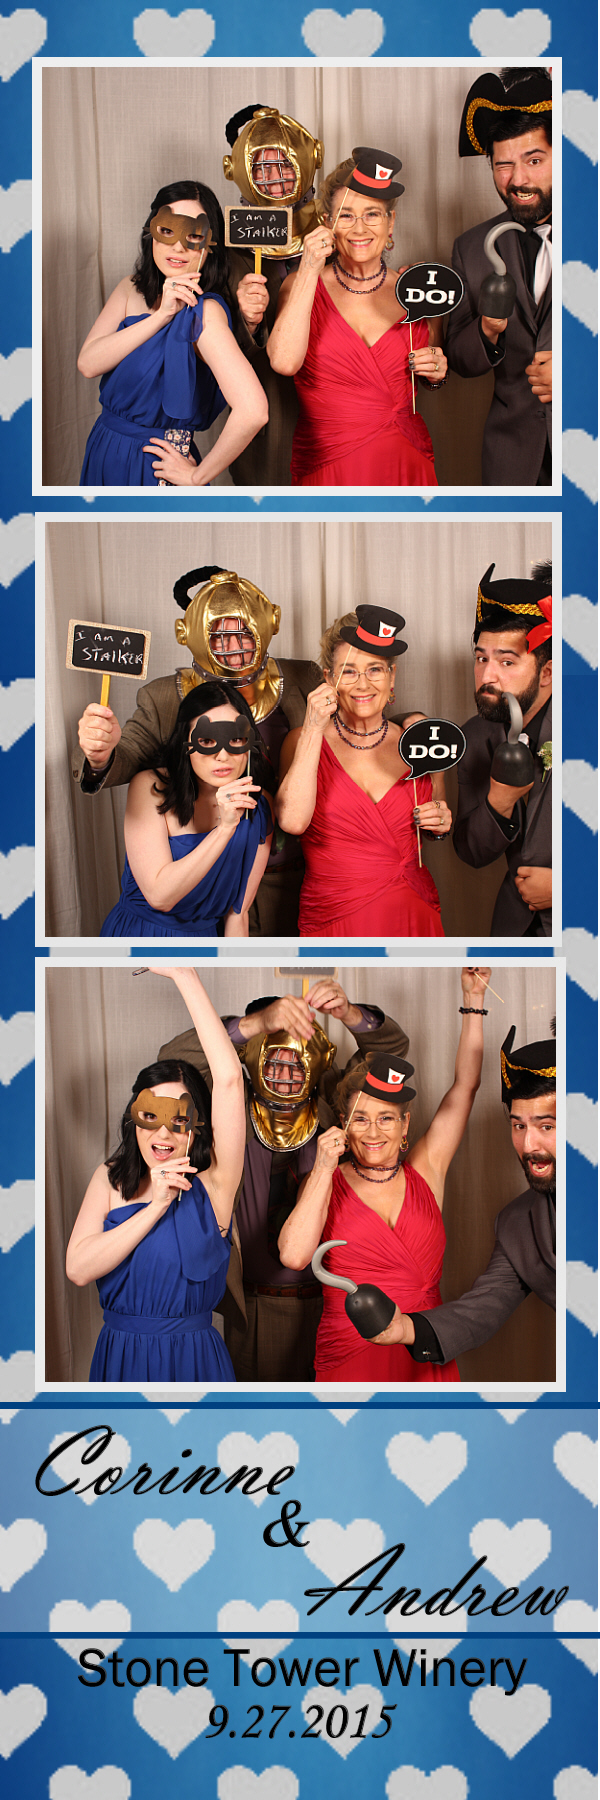 Guest House Events Photo Booth C&A (25).jpg